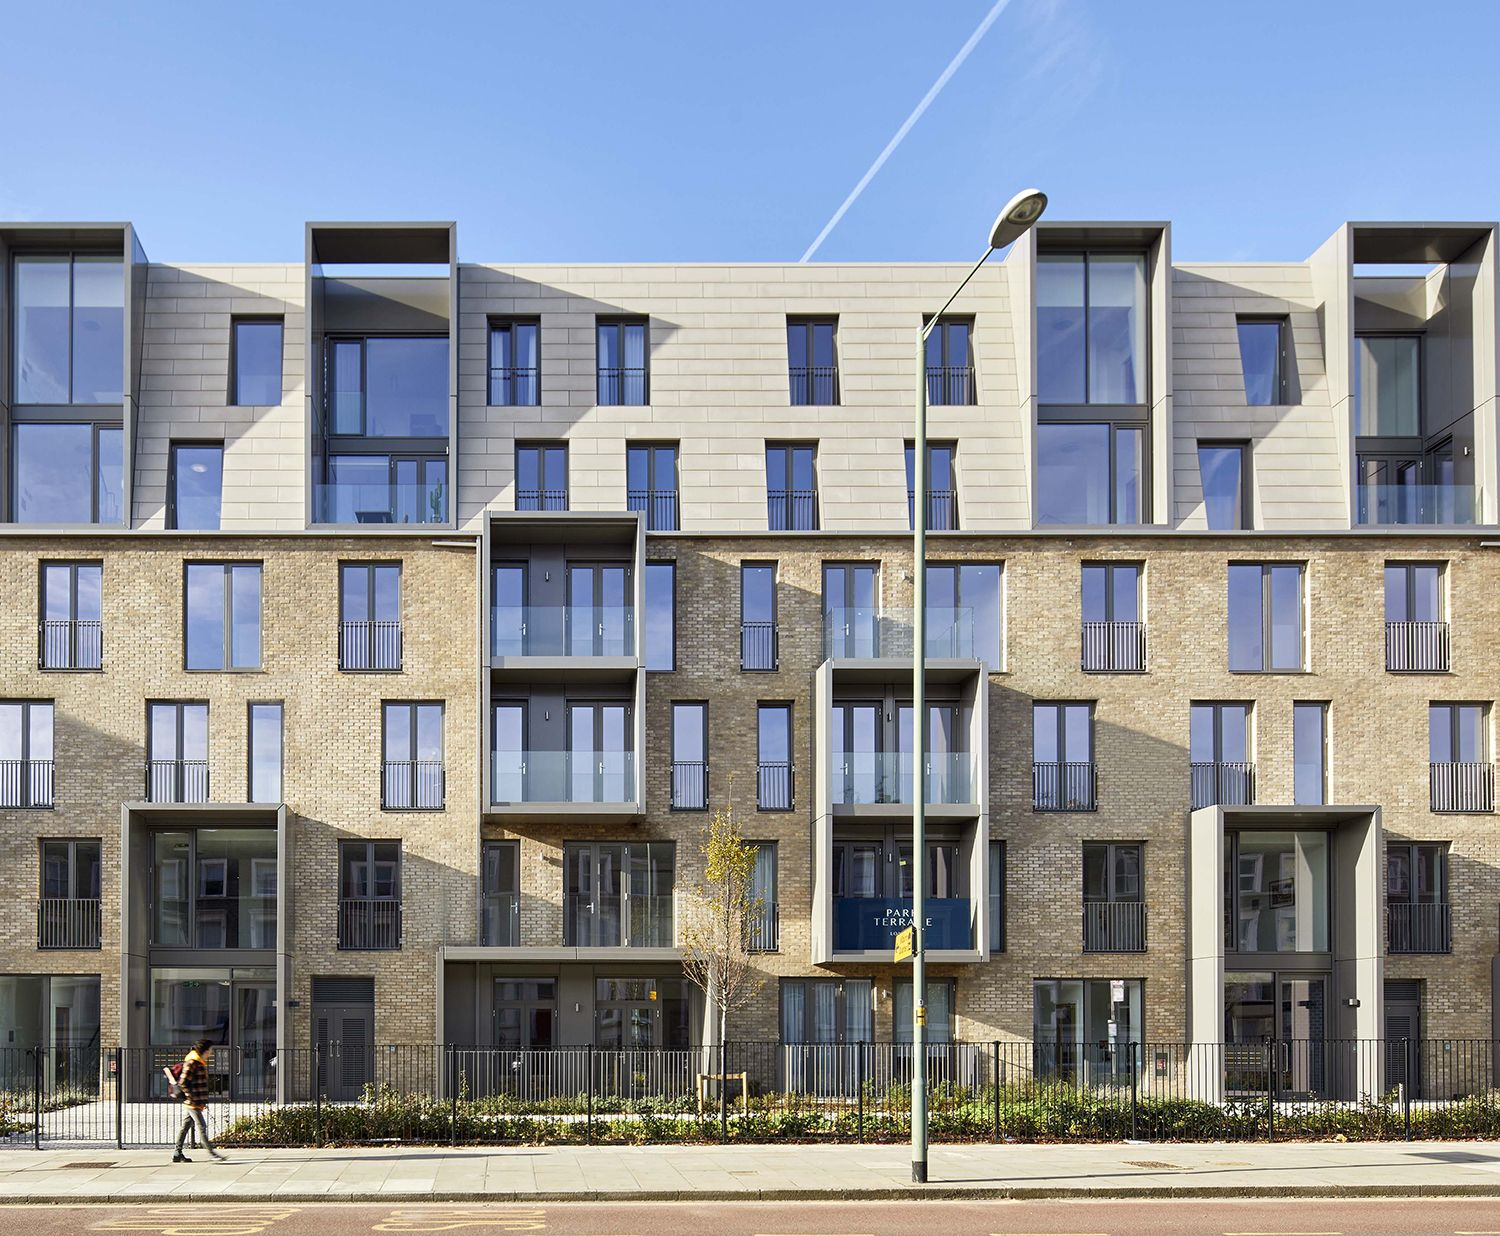 This Regeneration Development Is A Competition Winning Scheme That